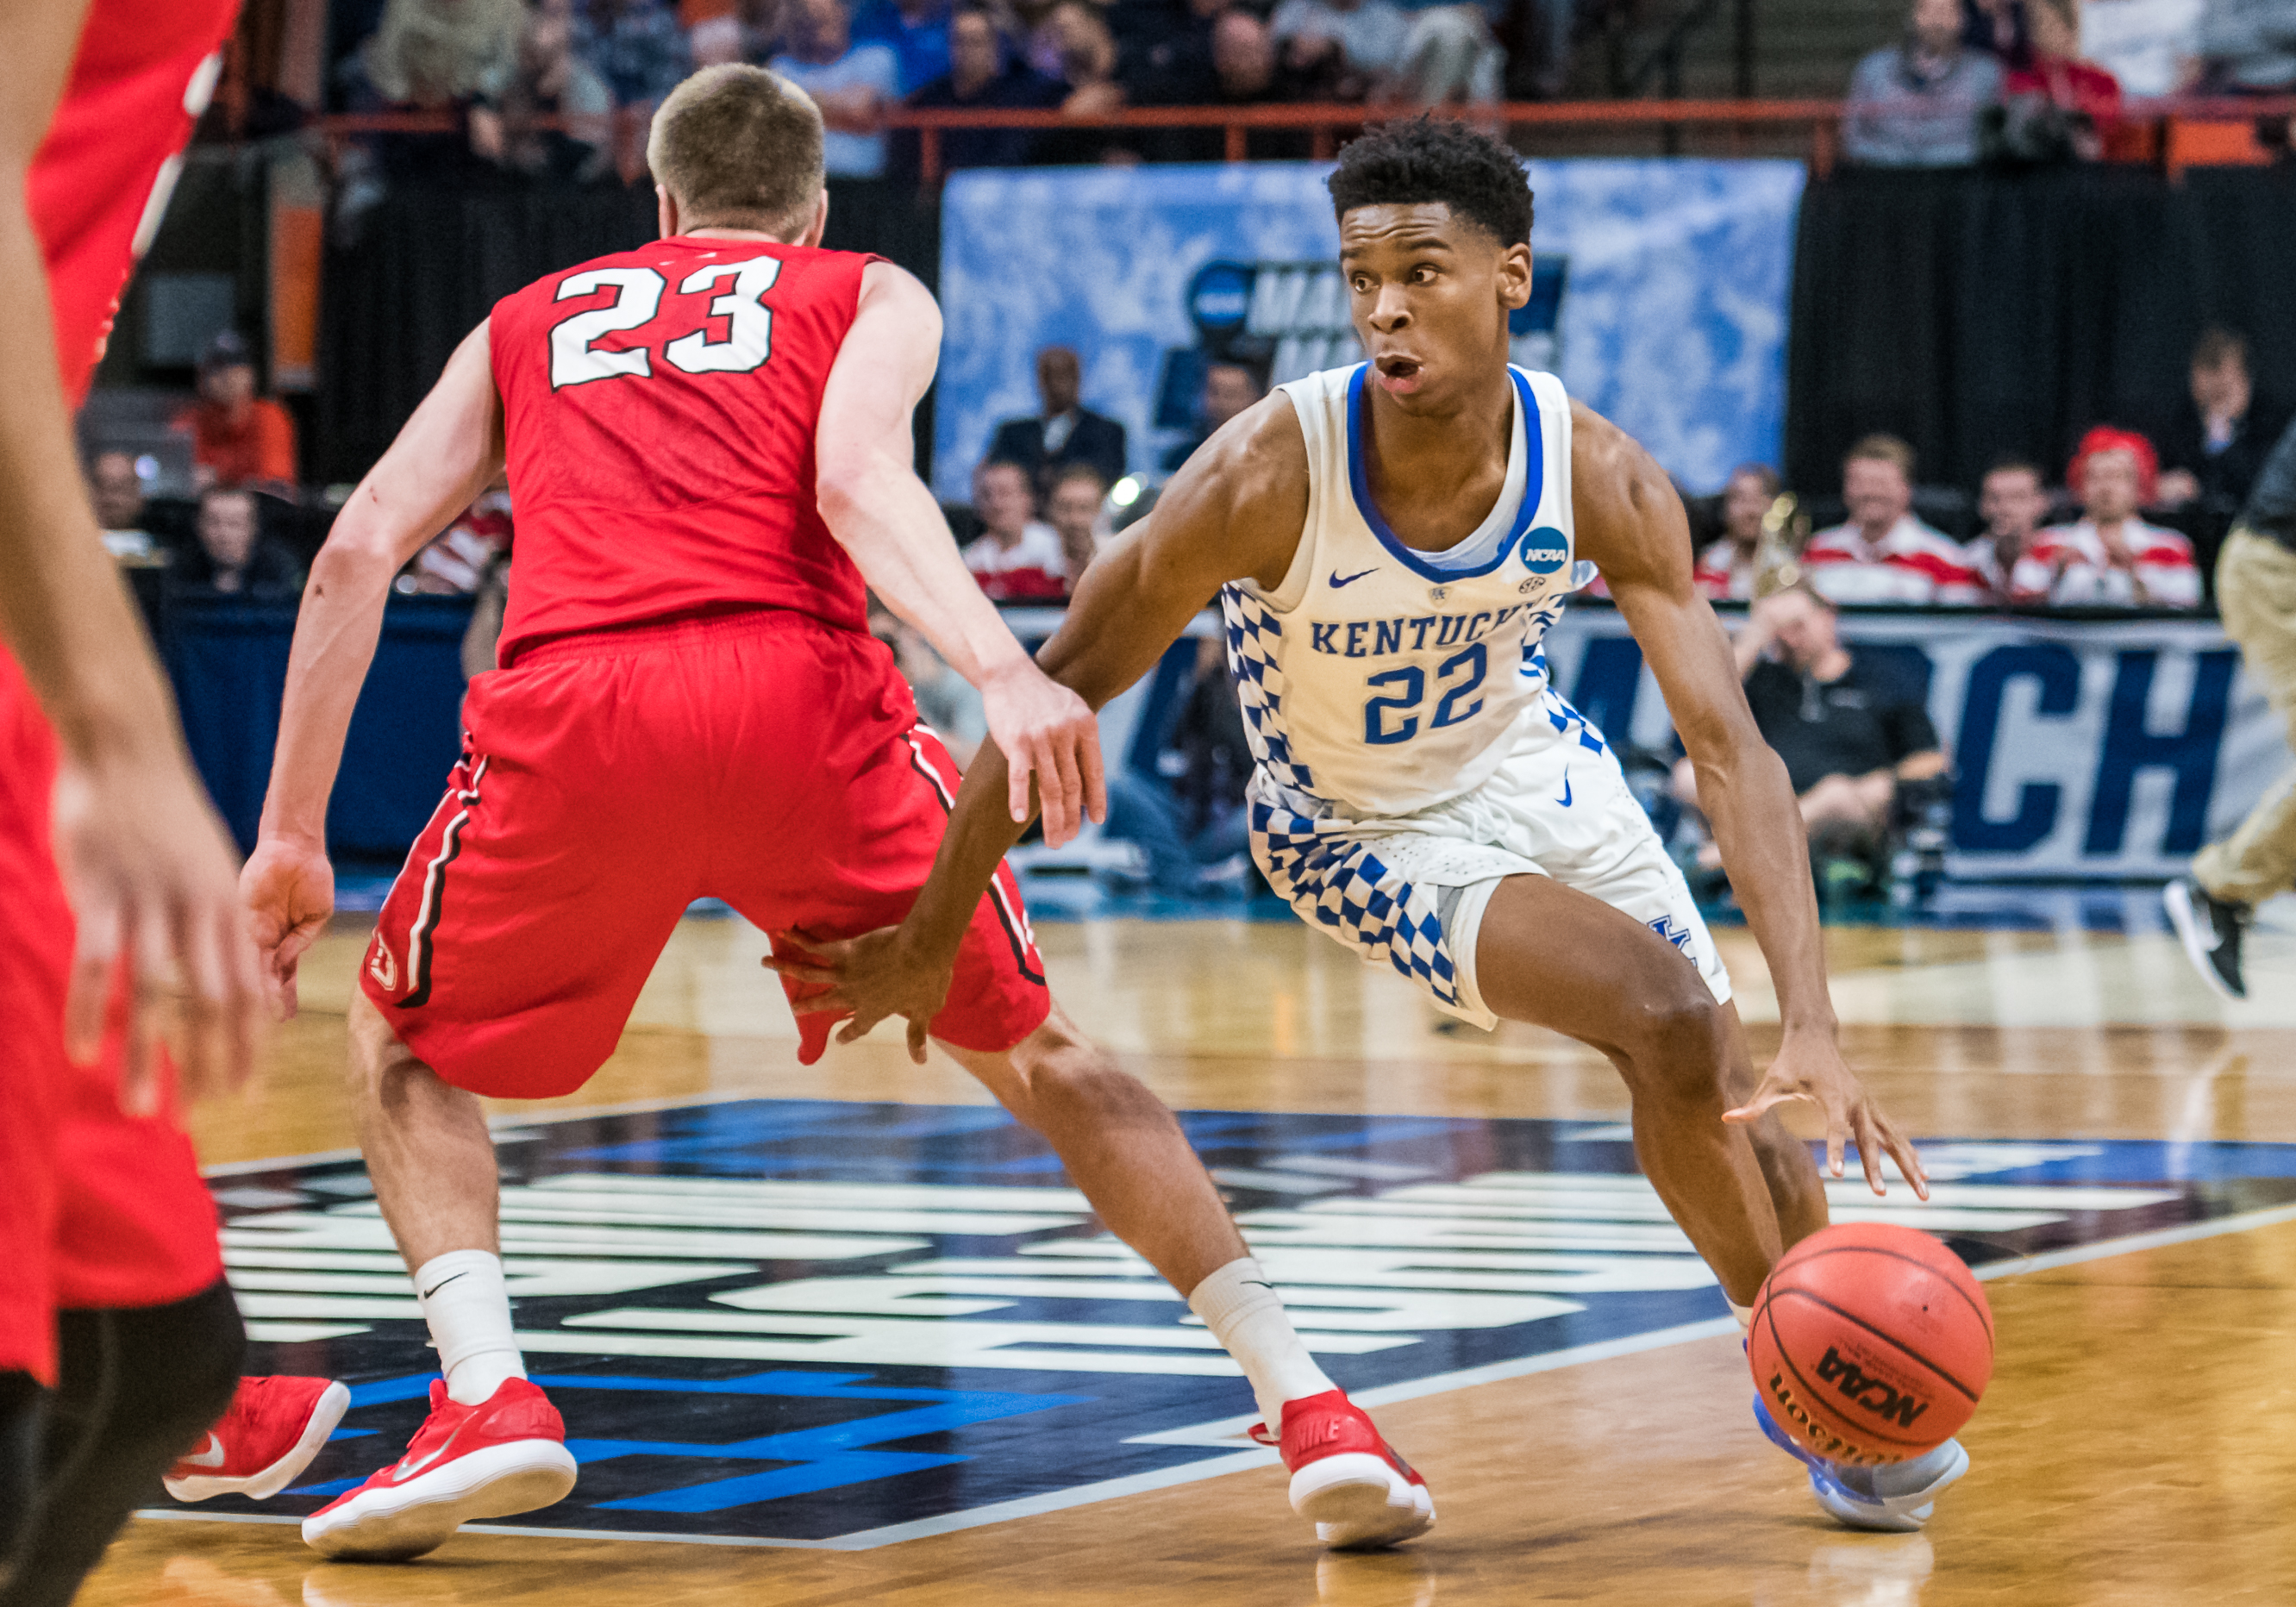 March 15, 2018 - Boise, ID, U.S. - BOISE, ID - MARCH 15:G Shai Gilgeous-Alexander (22) of the Kentucky Wildcats fakes and moves behind F Peyton Aldridge (23) of the Davidson Wildcats during the NCAA Division I Men's Championship First Round game between the Kentucky Wildcats and the Davidson Wildcats on Thursday, March 15, 2018 at the Taco Bell Arena in Boise, Idaho.   (Photo by Douglas Stringer/Icon Sportswire) (Credit Image: © Douglas Stringer/Icon SMI via ZUMA Press)